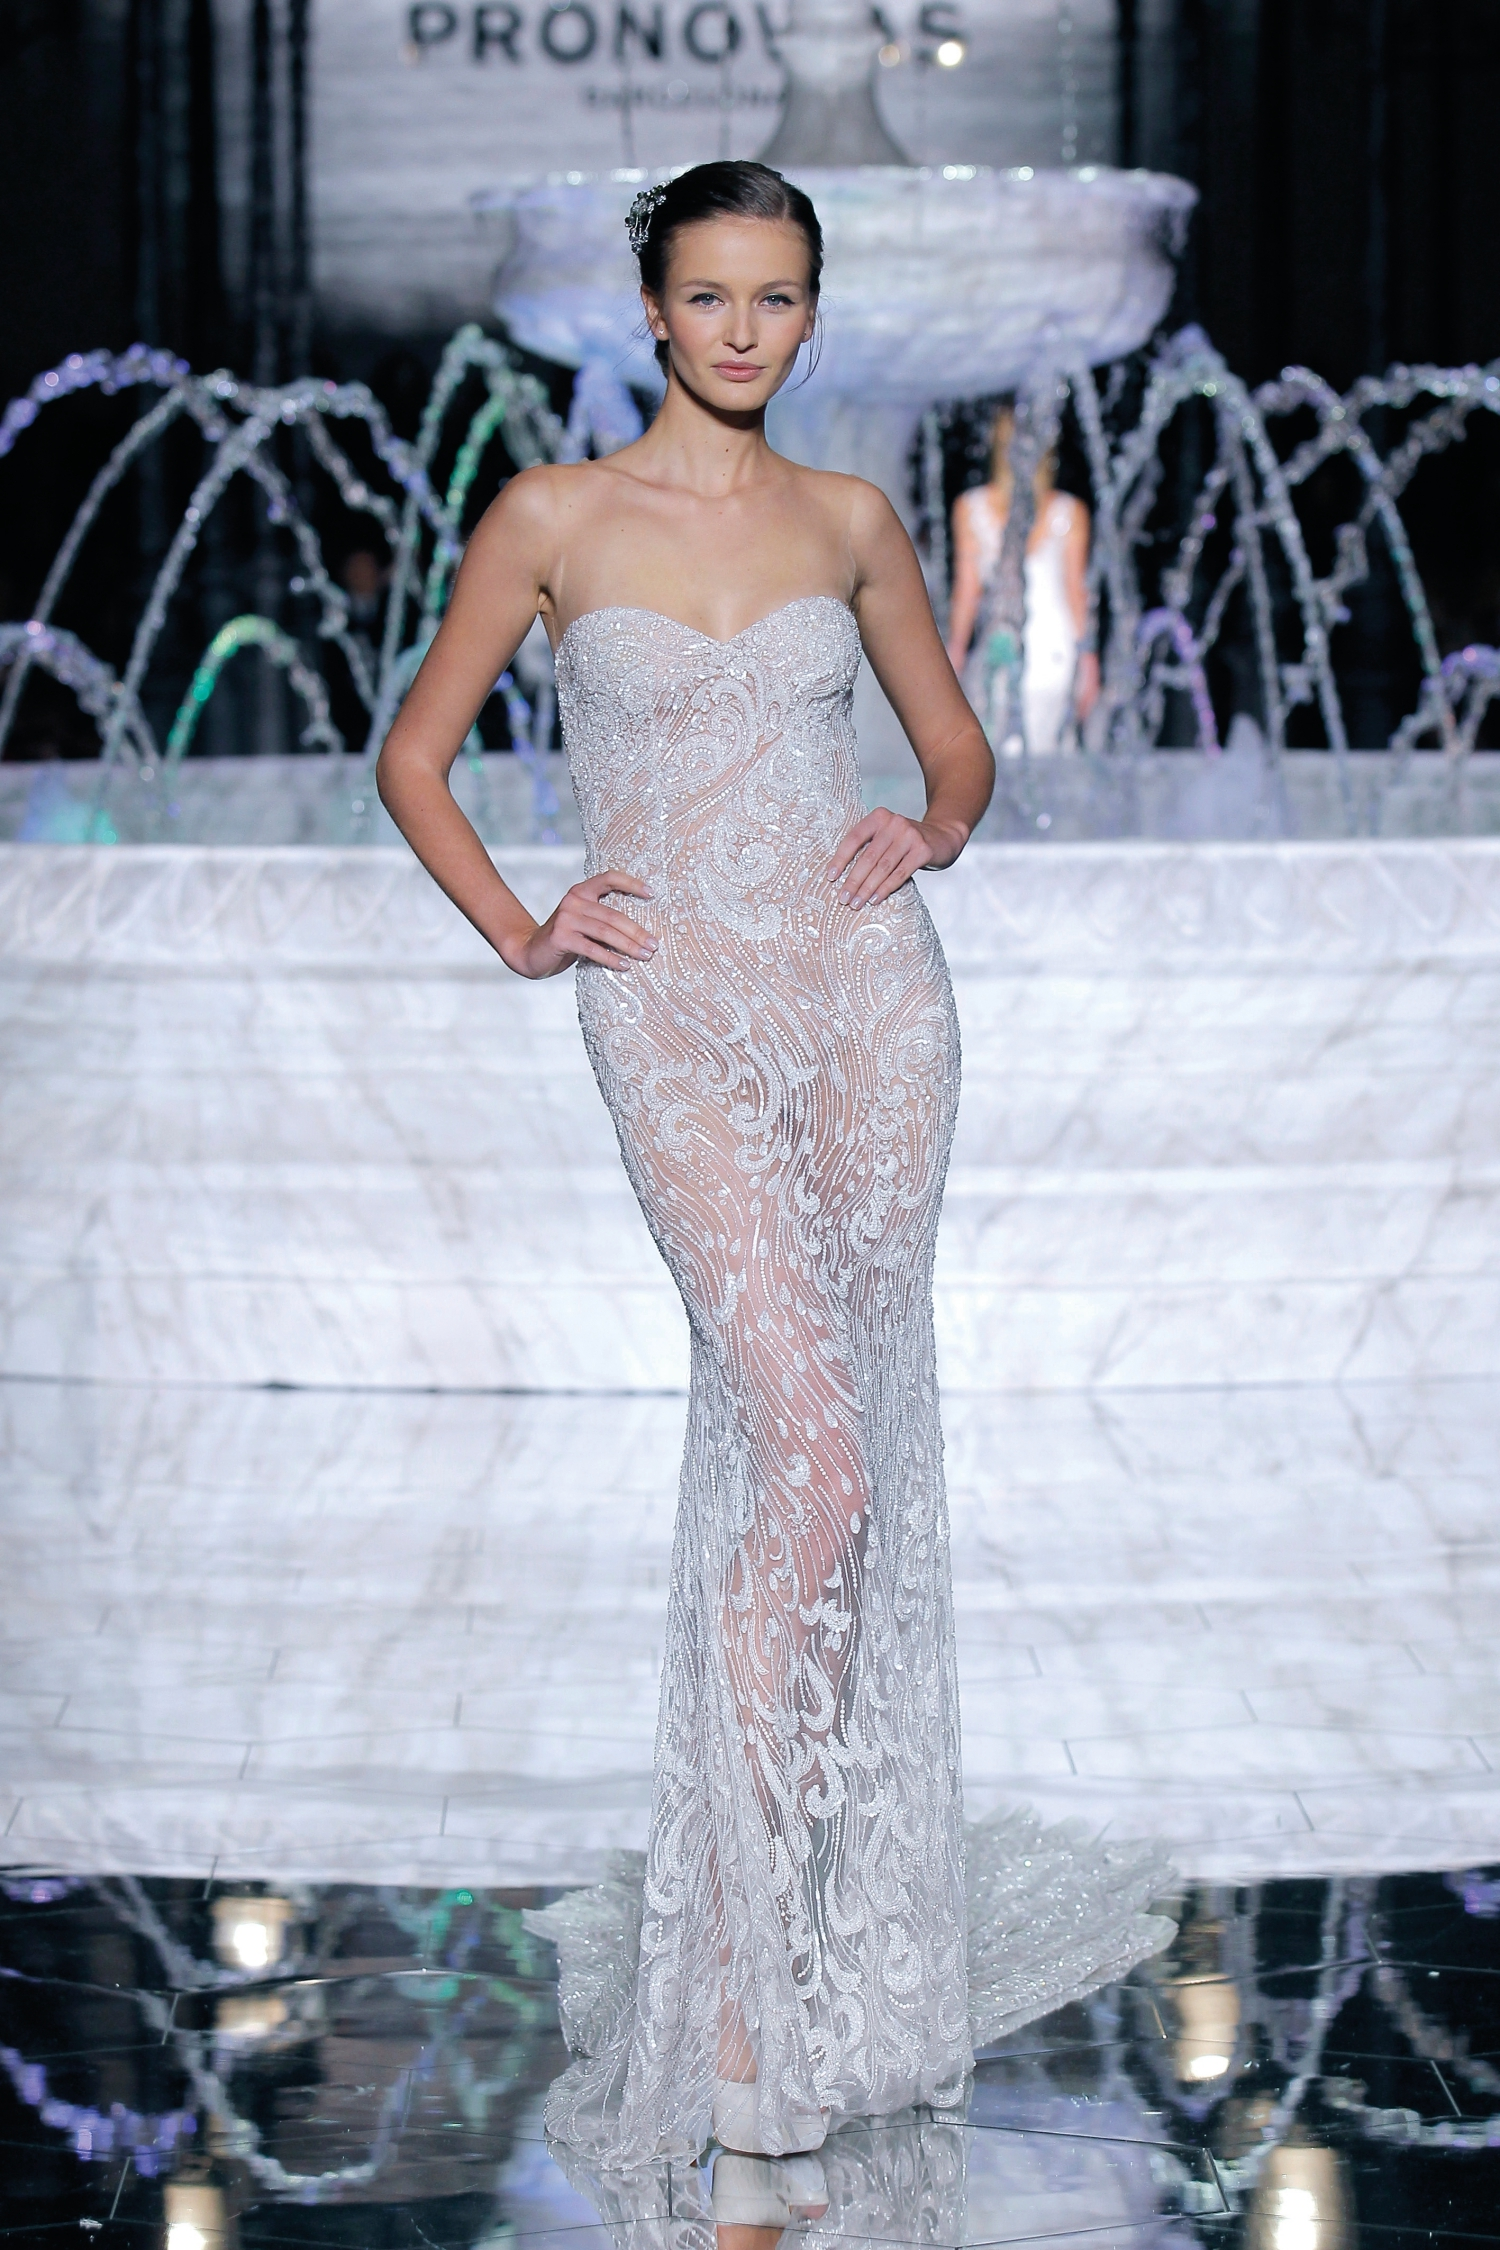 1-PRONOVIAS FASHION SHOW_Risca